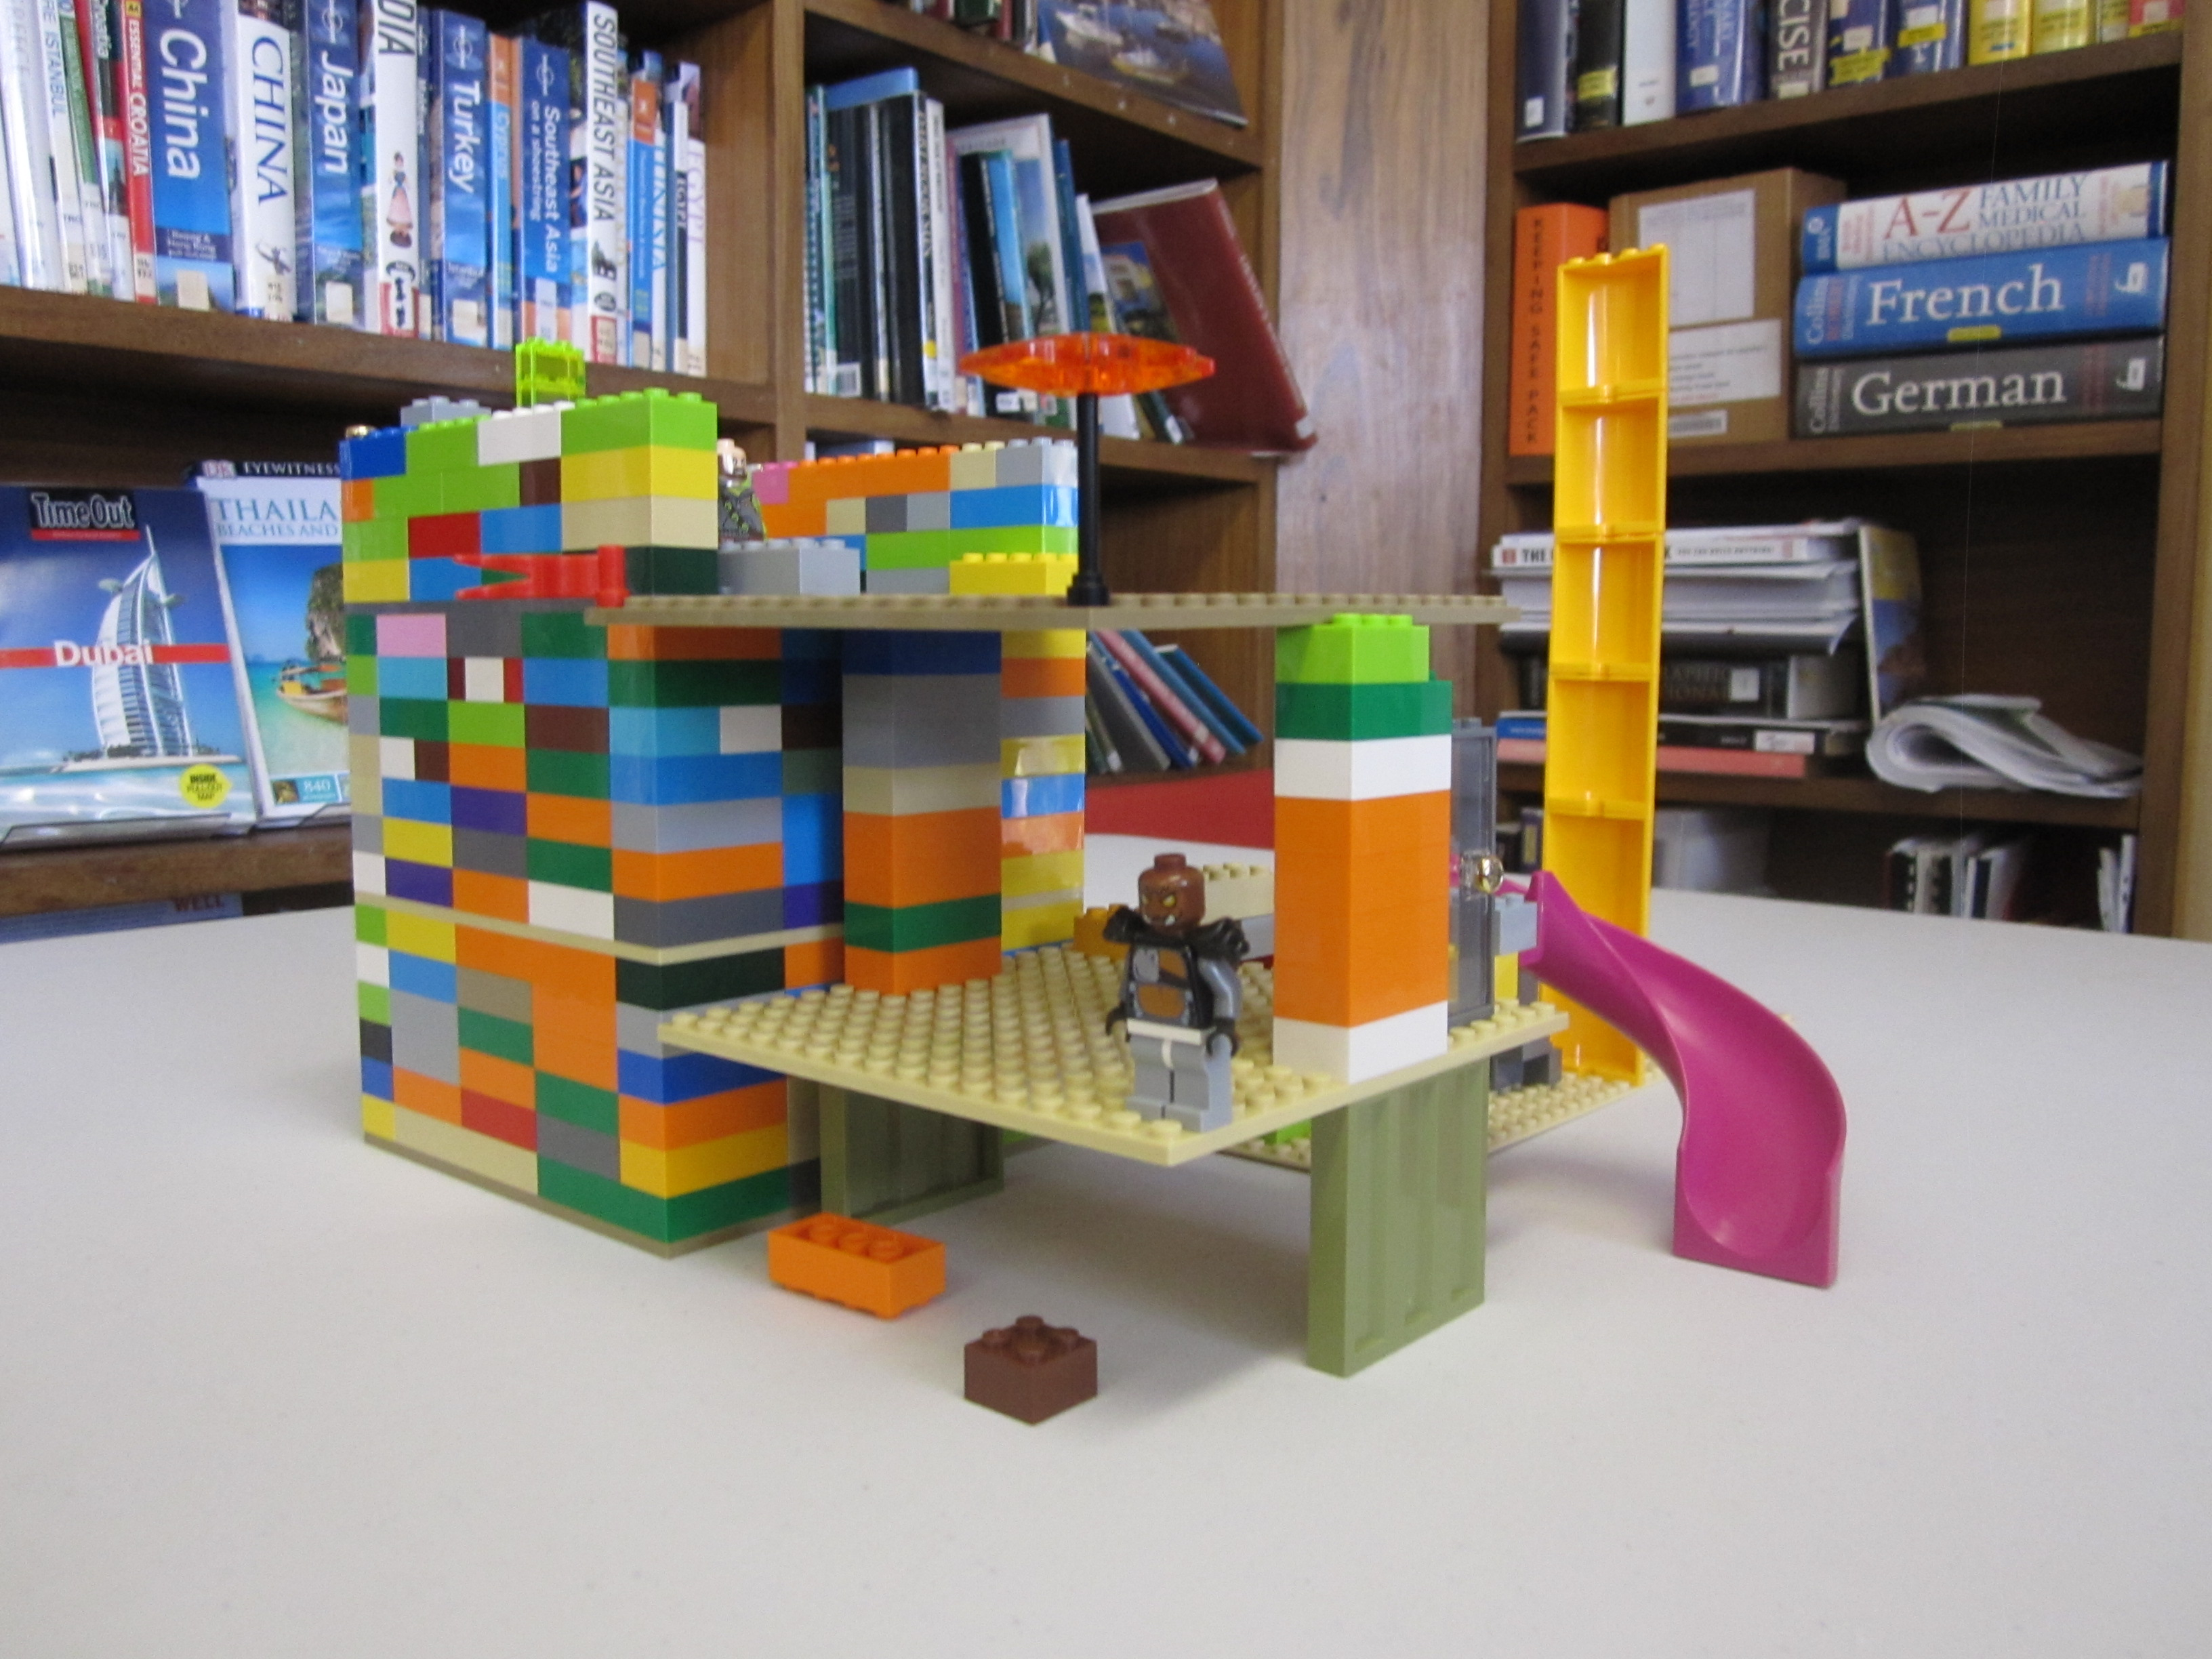 LEGO Table available to use throughout all opening hours in the library. A great way to create and build some wonderful Lego creations.